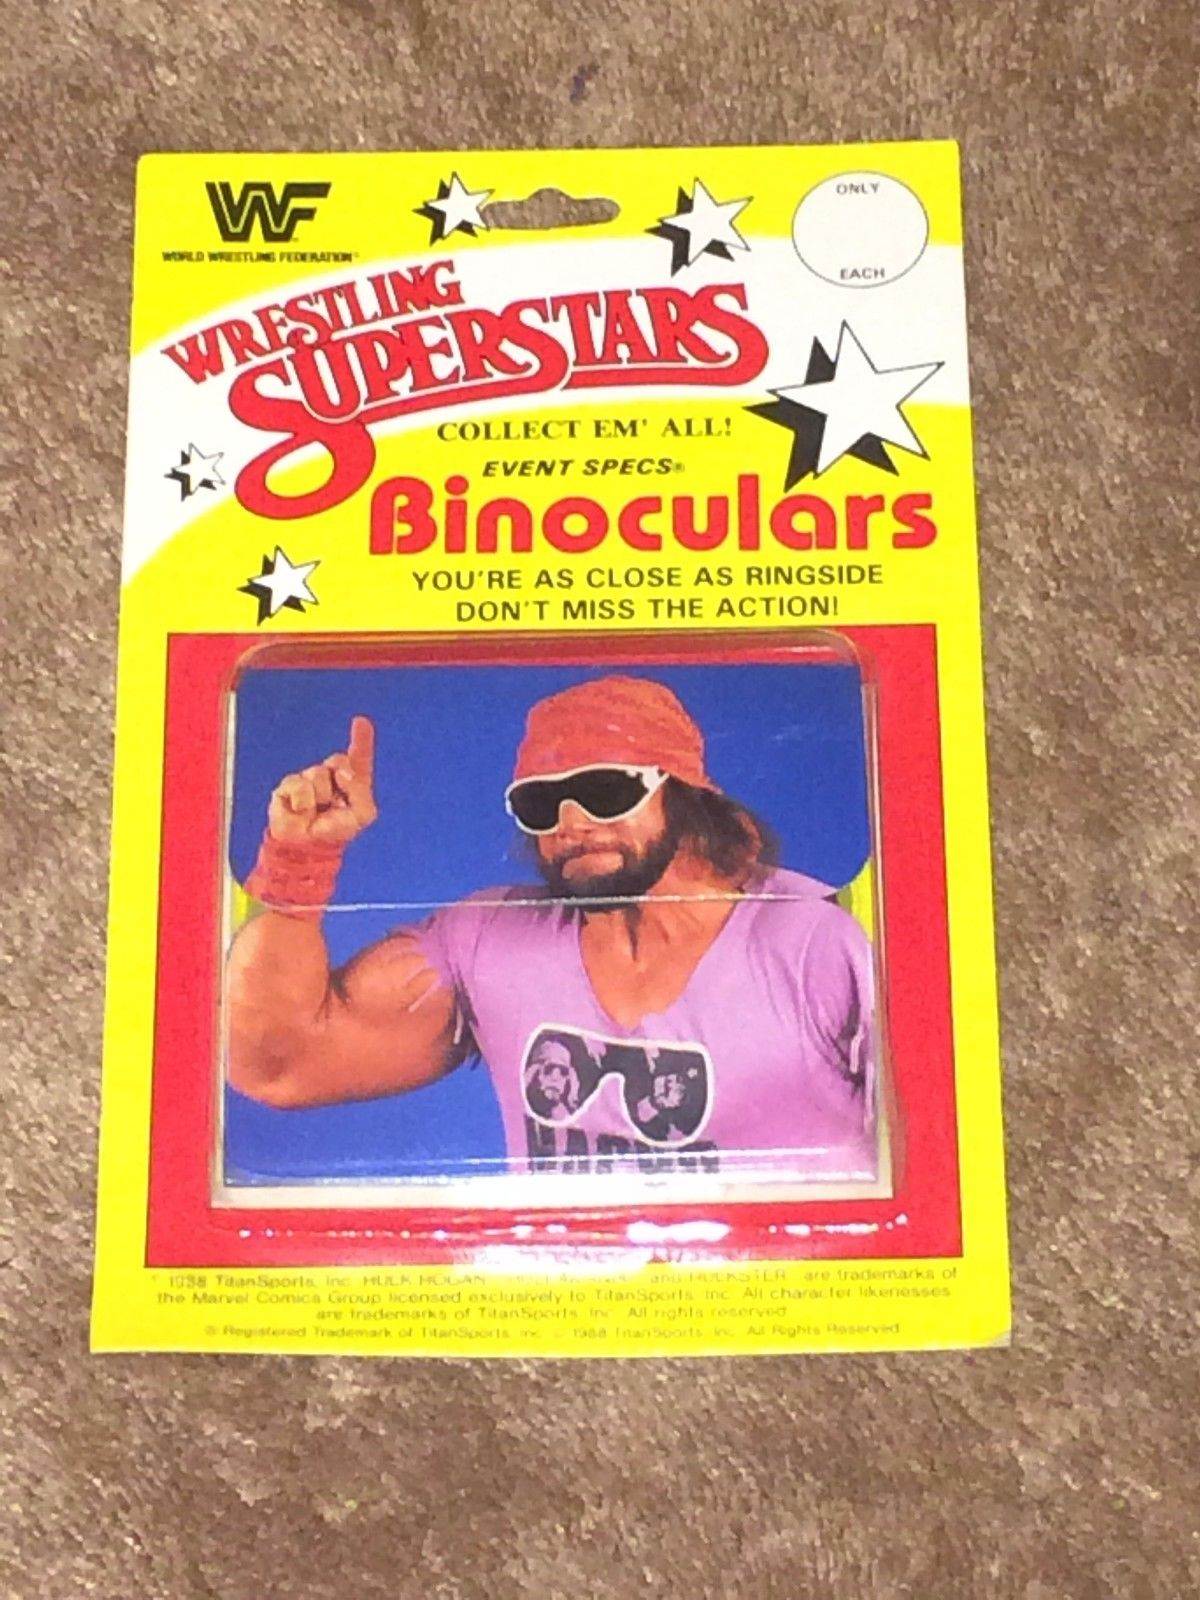 WWF Wrestling Superstars Macho Man Randy Savage binoculars 1